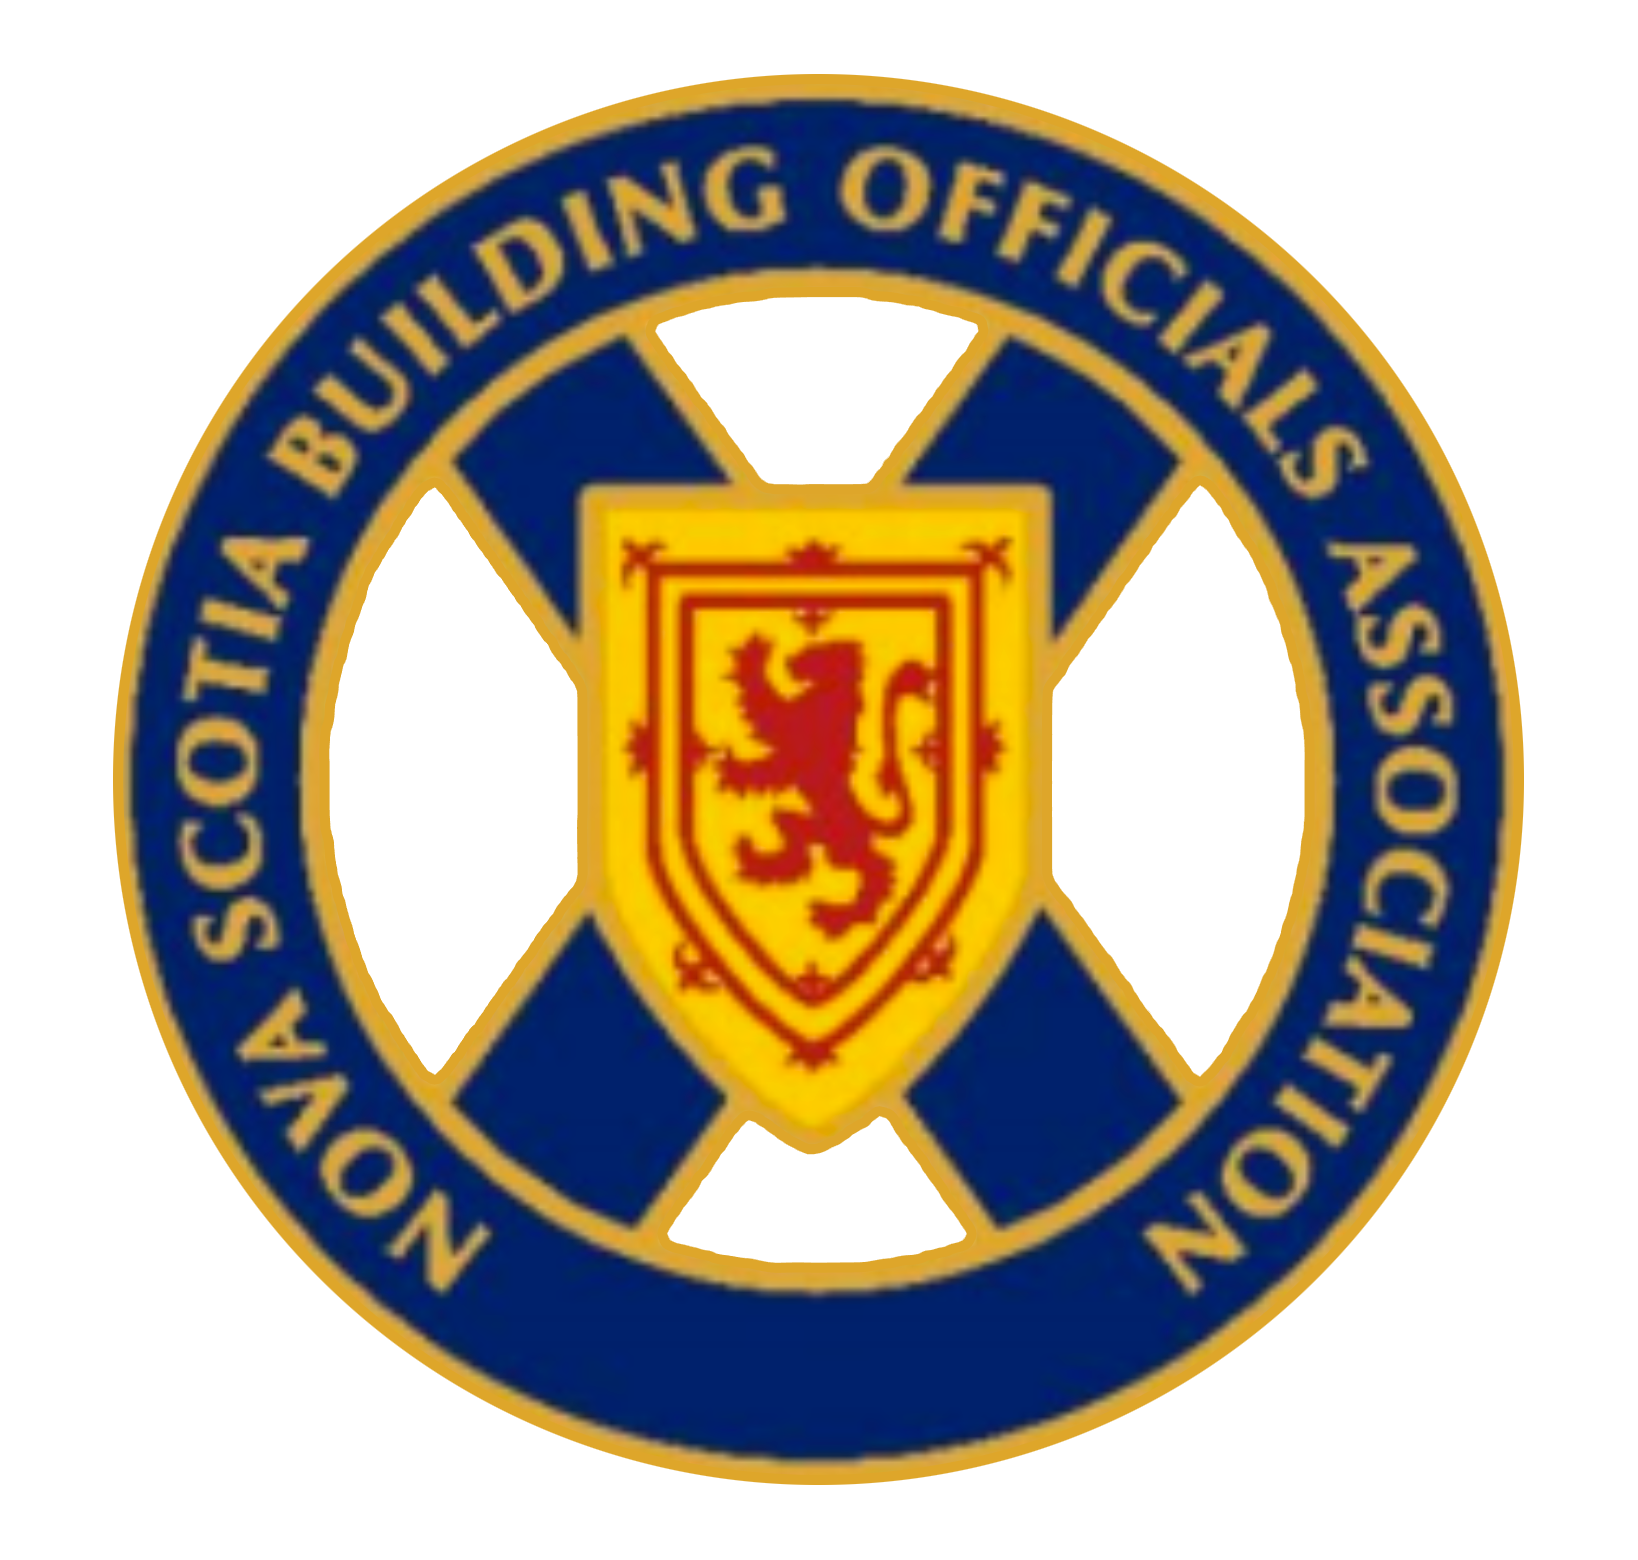 NSBOA - Nova Scotia Building Officials Association